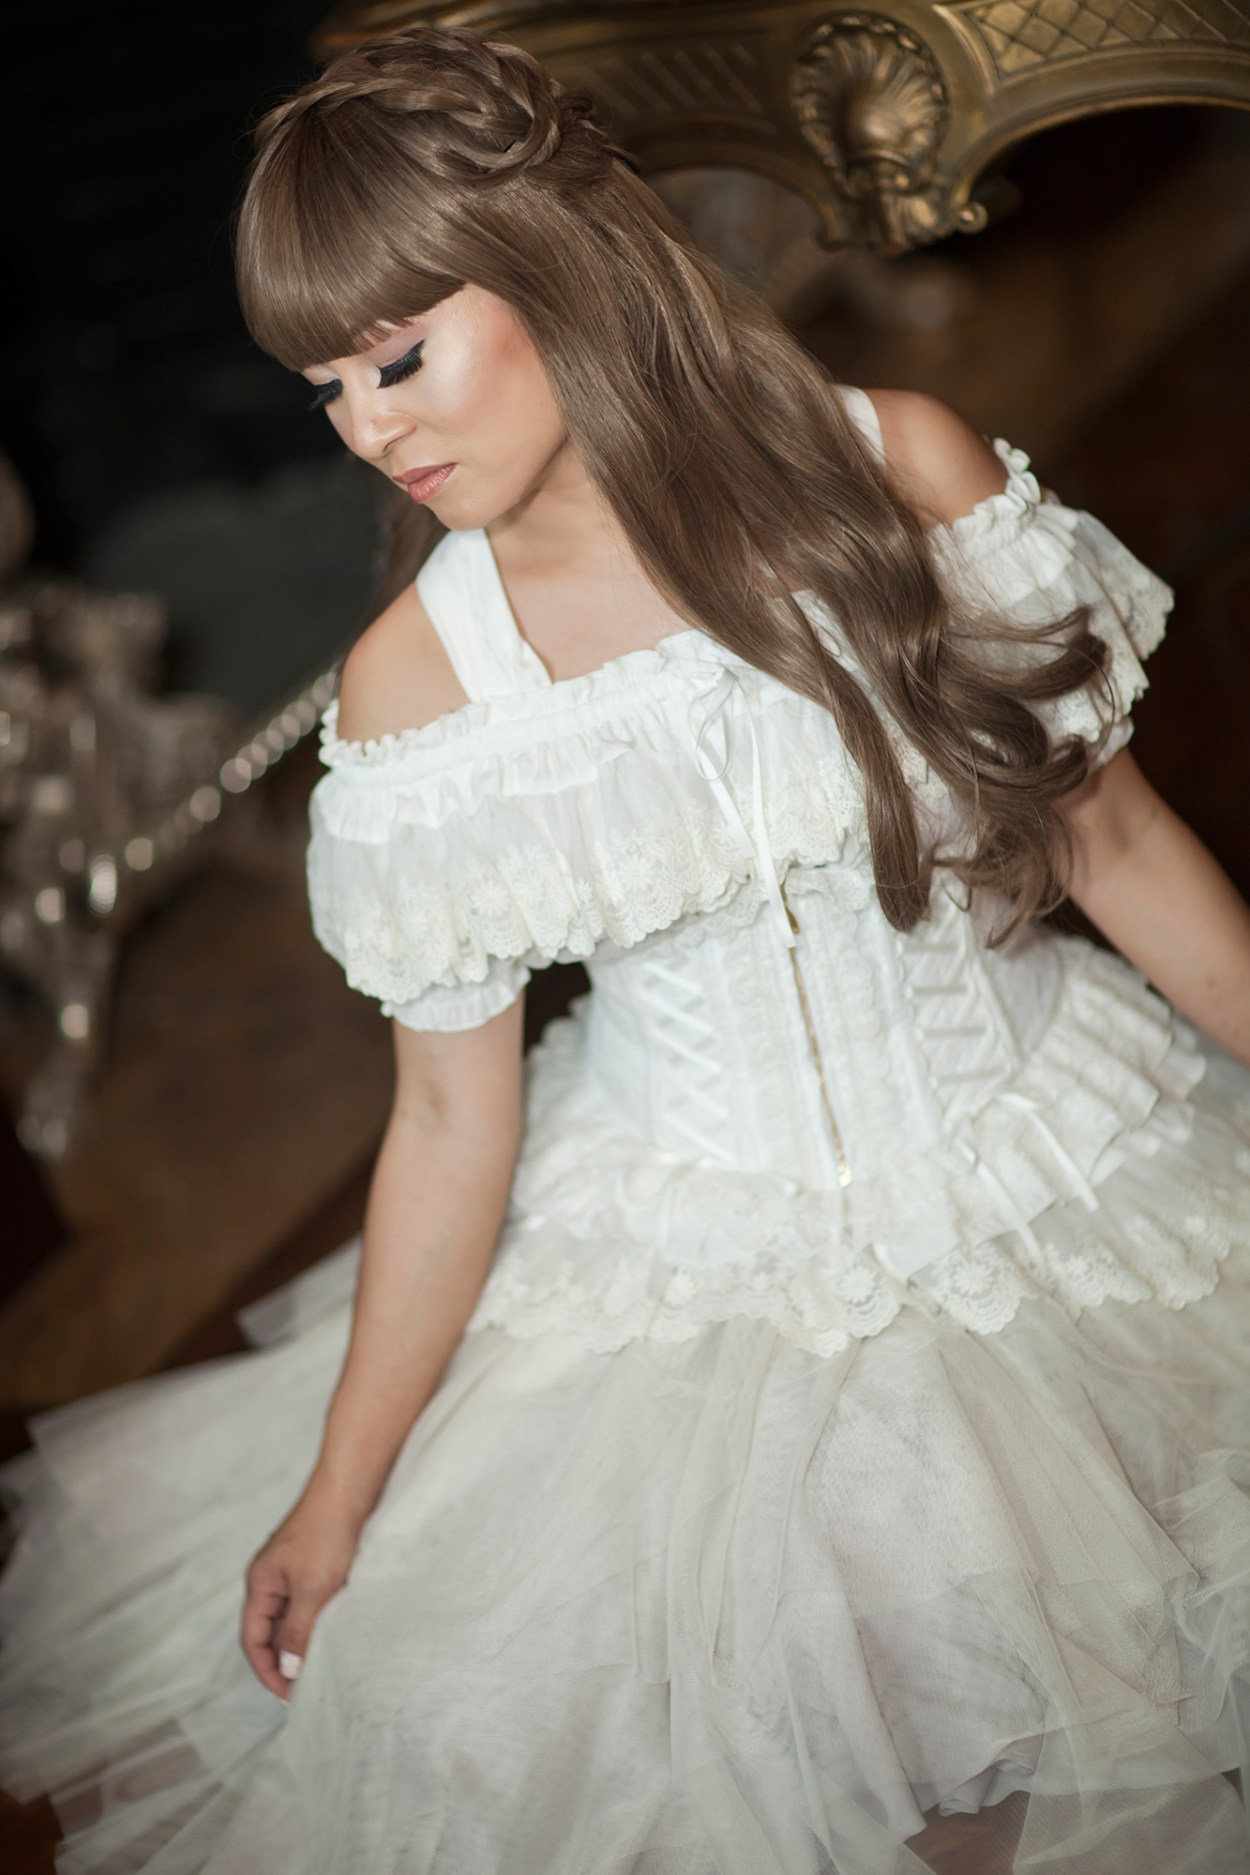 19-Sheglit-Ivory-Dress-Fashion-JFashion-Style-Victorian-Lolita-Moody